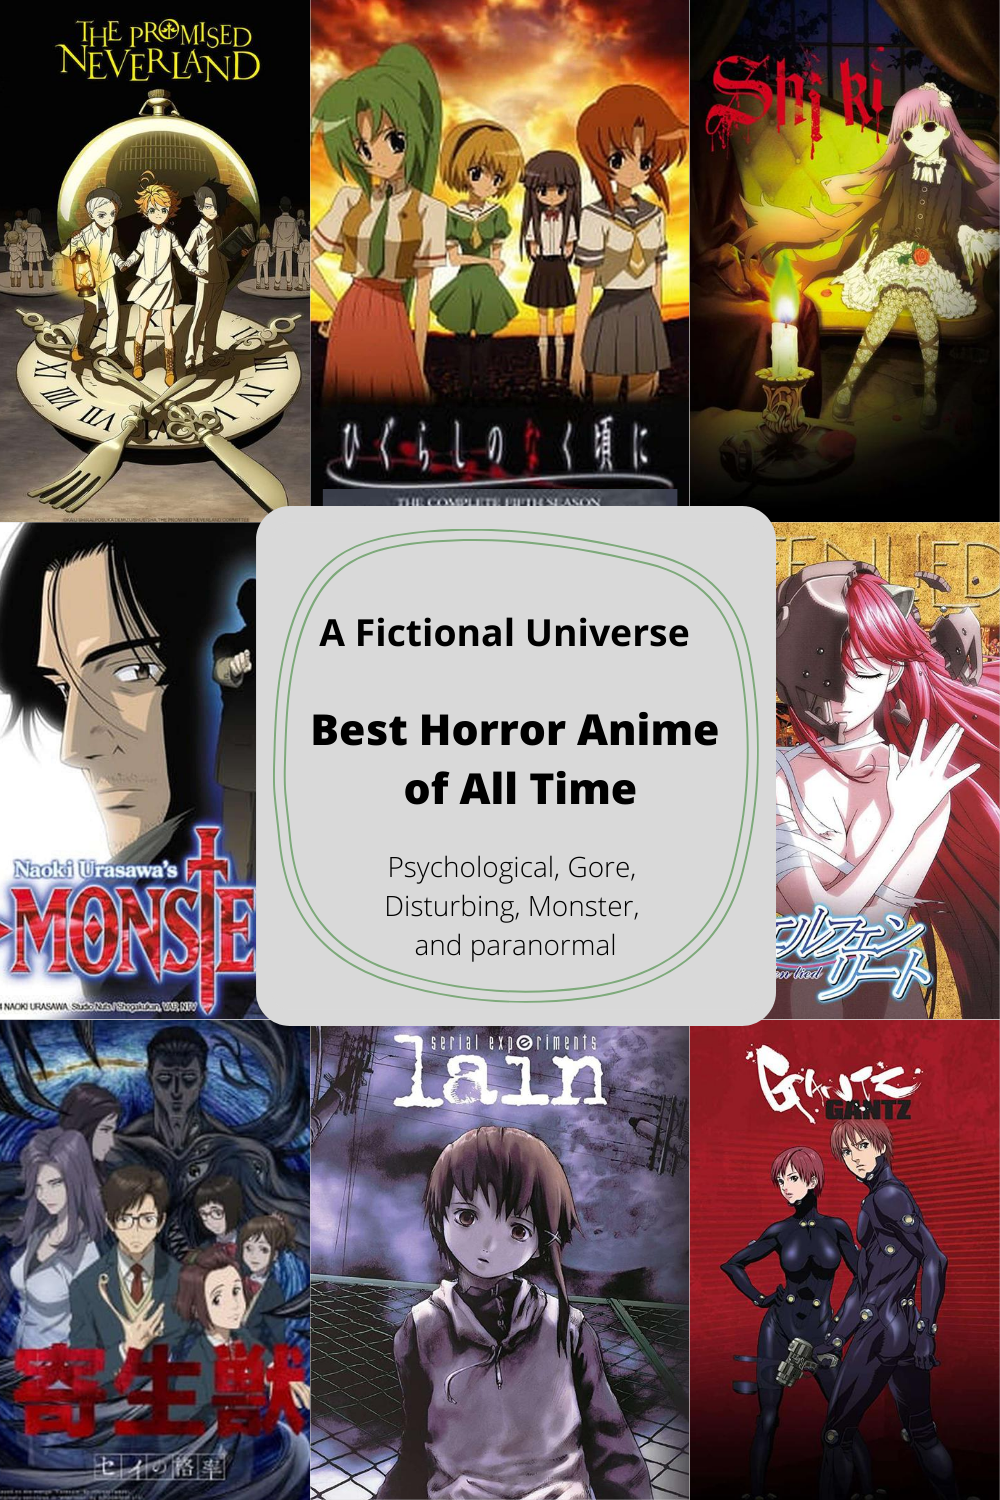 Best Horror Anime of All Time Article Image